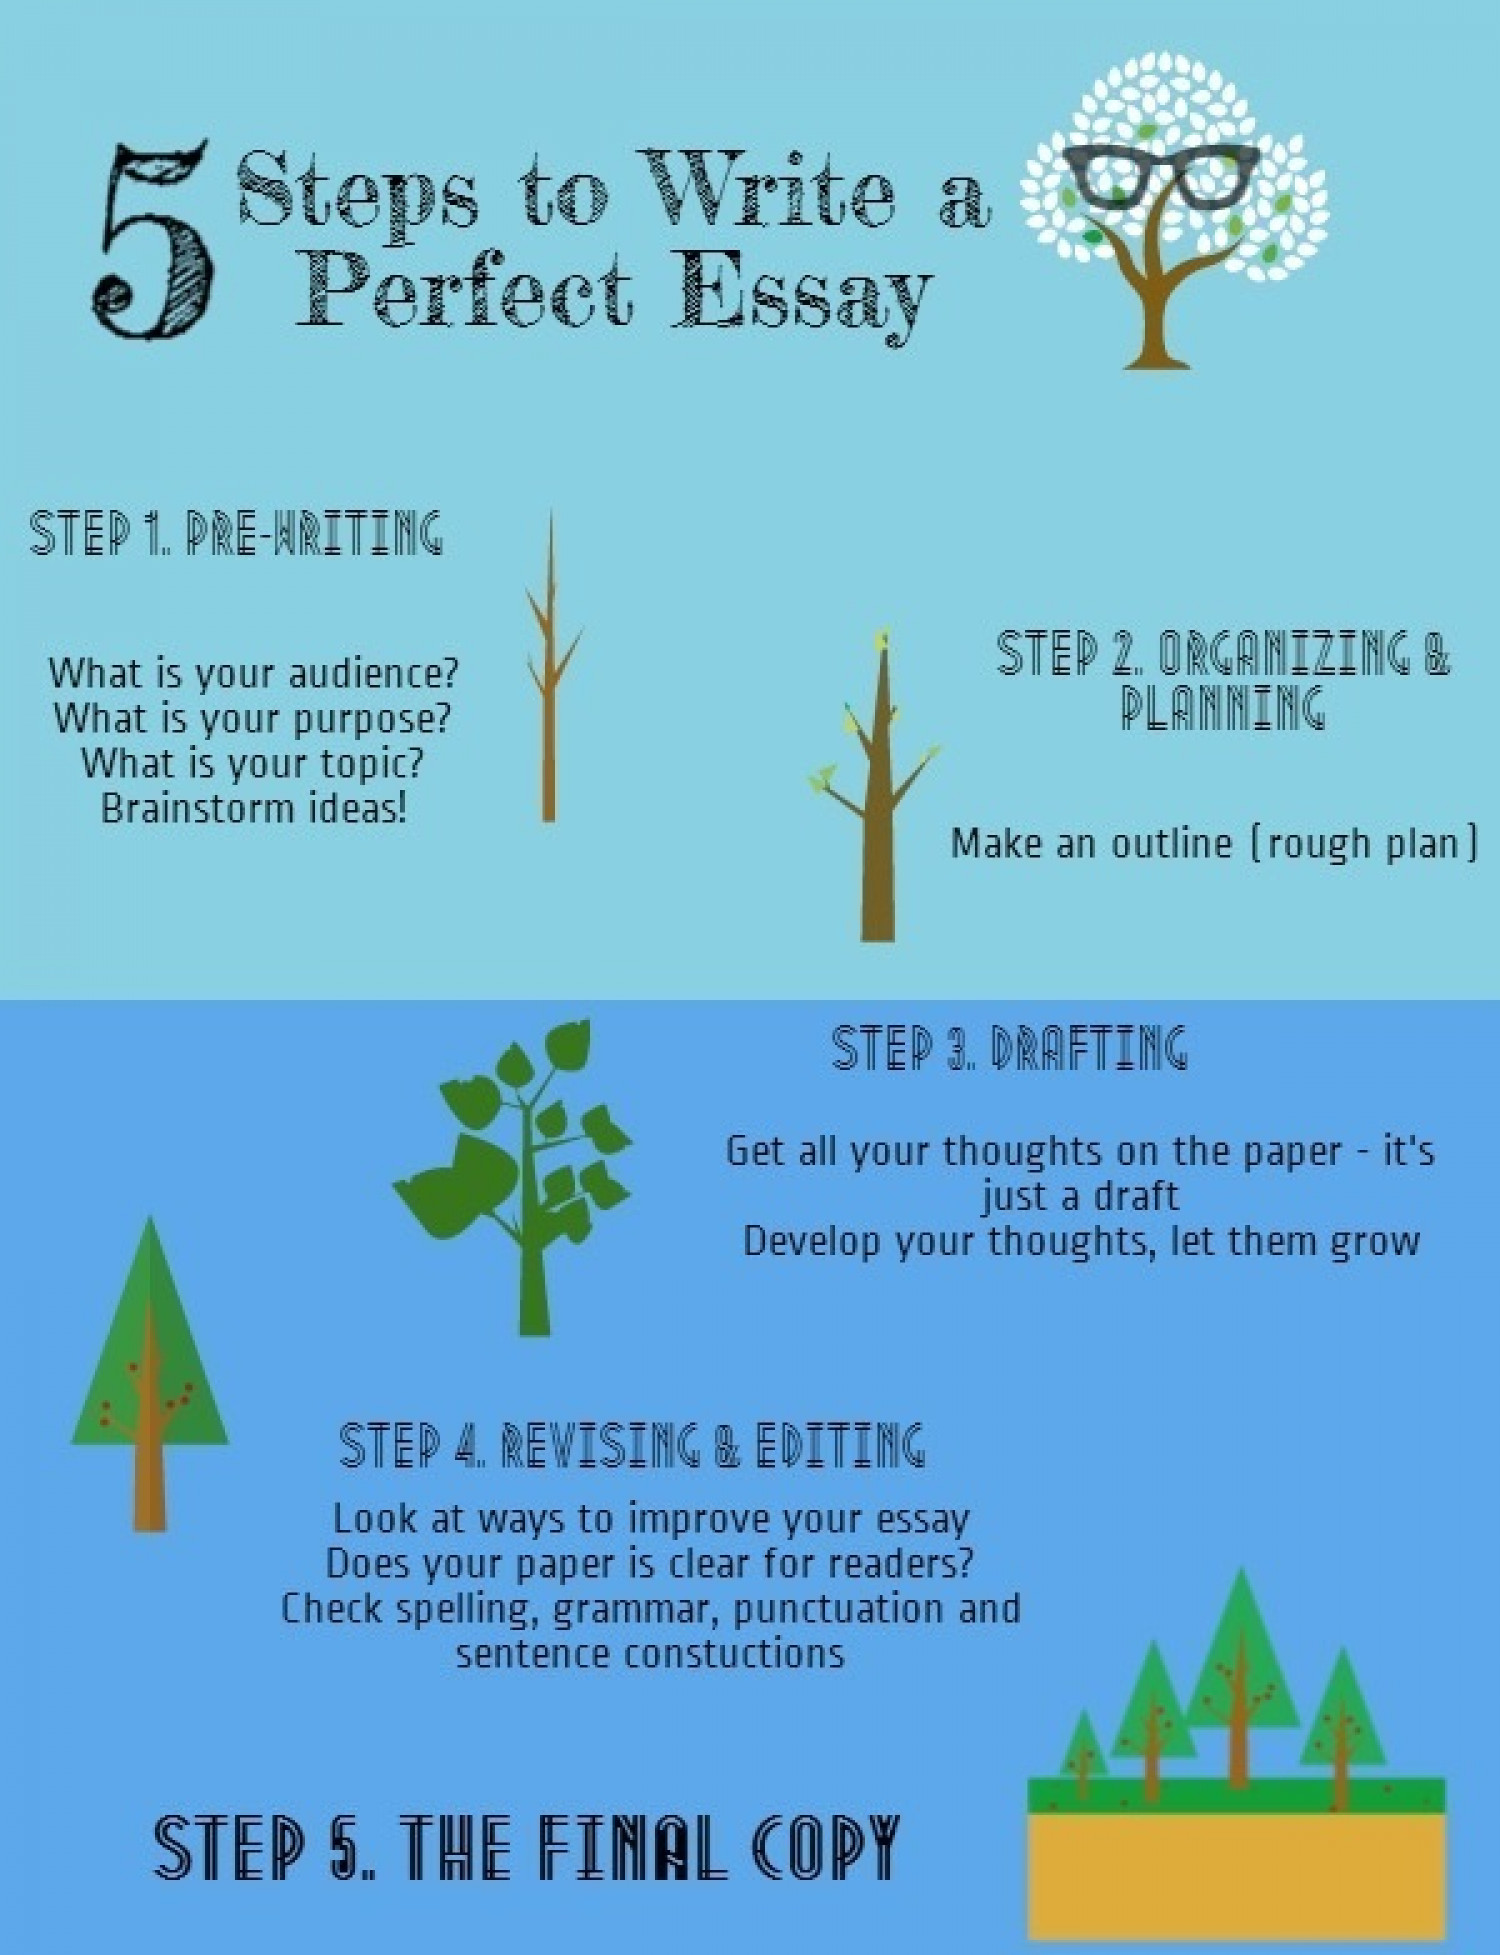 steps to writing an narrative essay A narrative essay is a piece of writing that recreates an experience through time unlike other essays, you may write in the first person (i, me, we) because it is a story about you in addition to telling a story, a narrative essay also communicates a main idea or a lesson learned first steps for writing a narrative essay: identify the experience that.